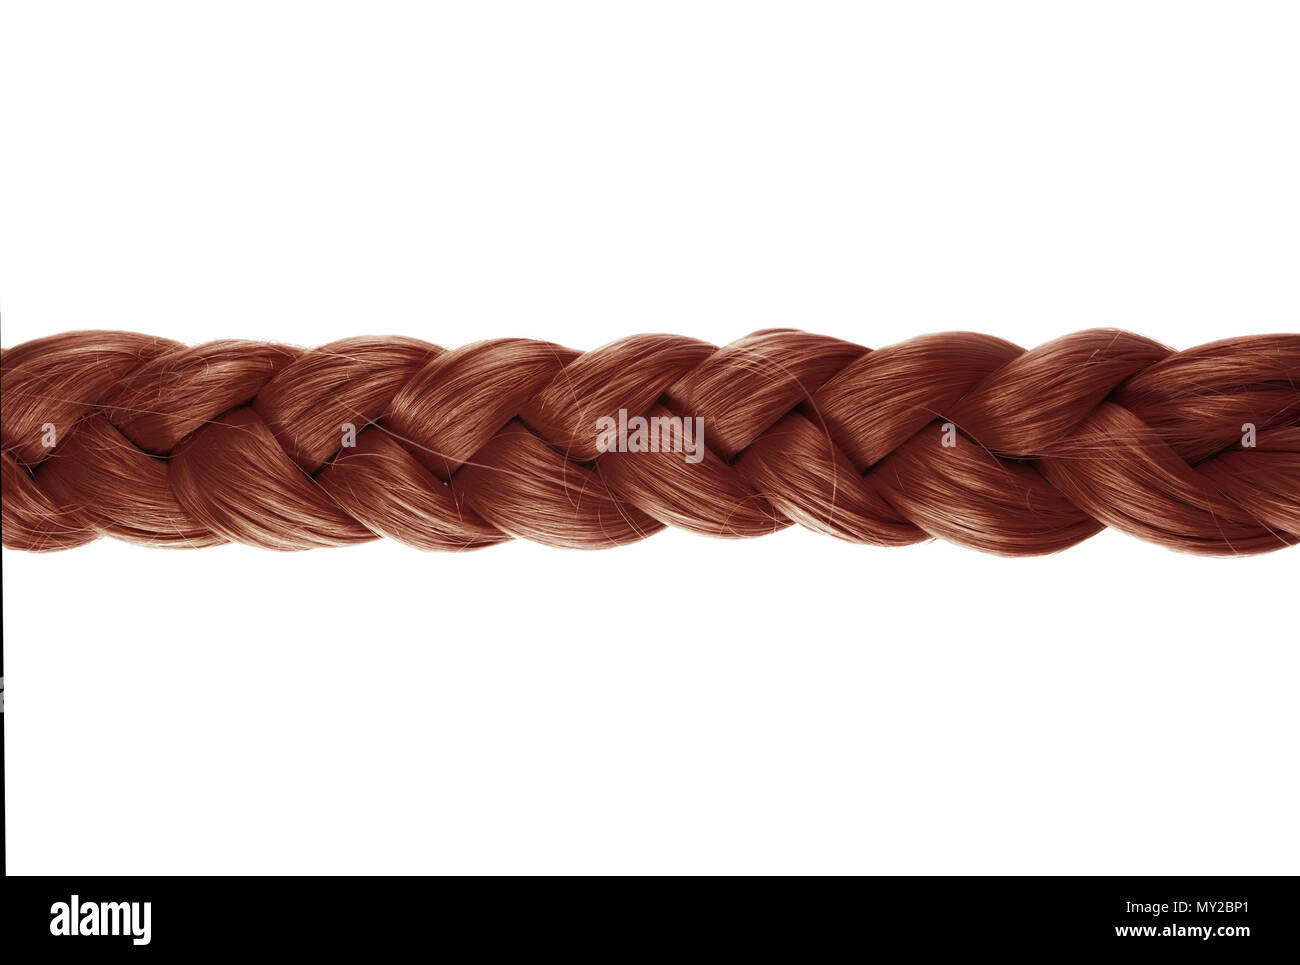 blond plait or braid of brown hair on white background - Stock Image